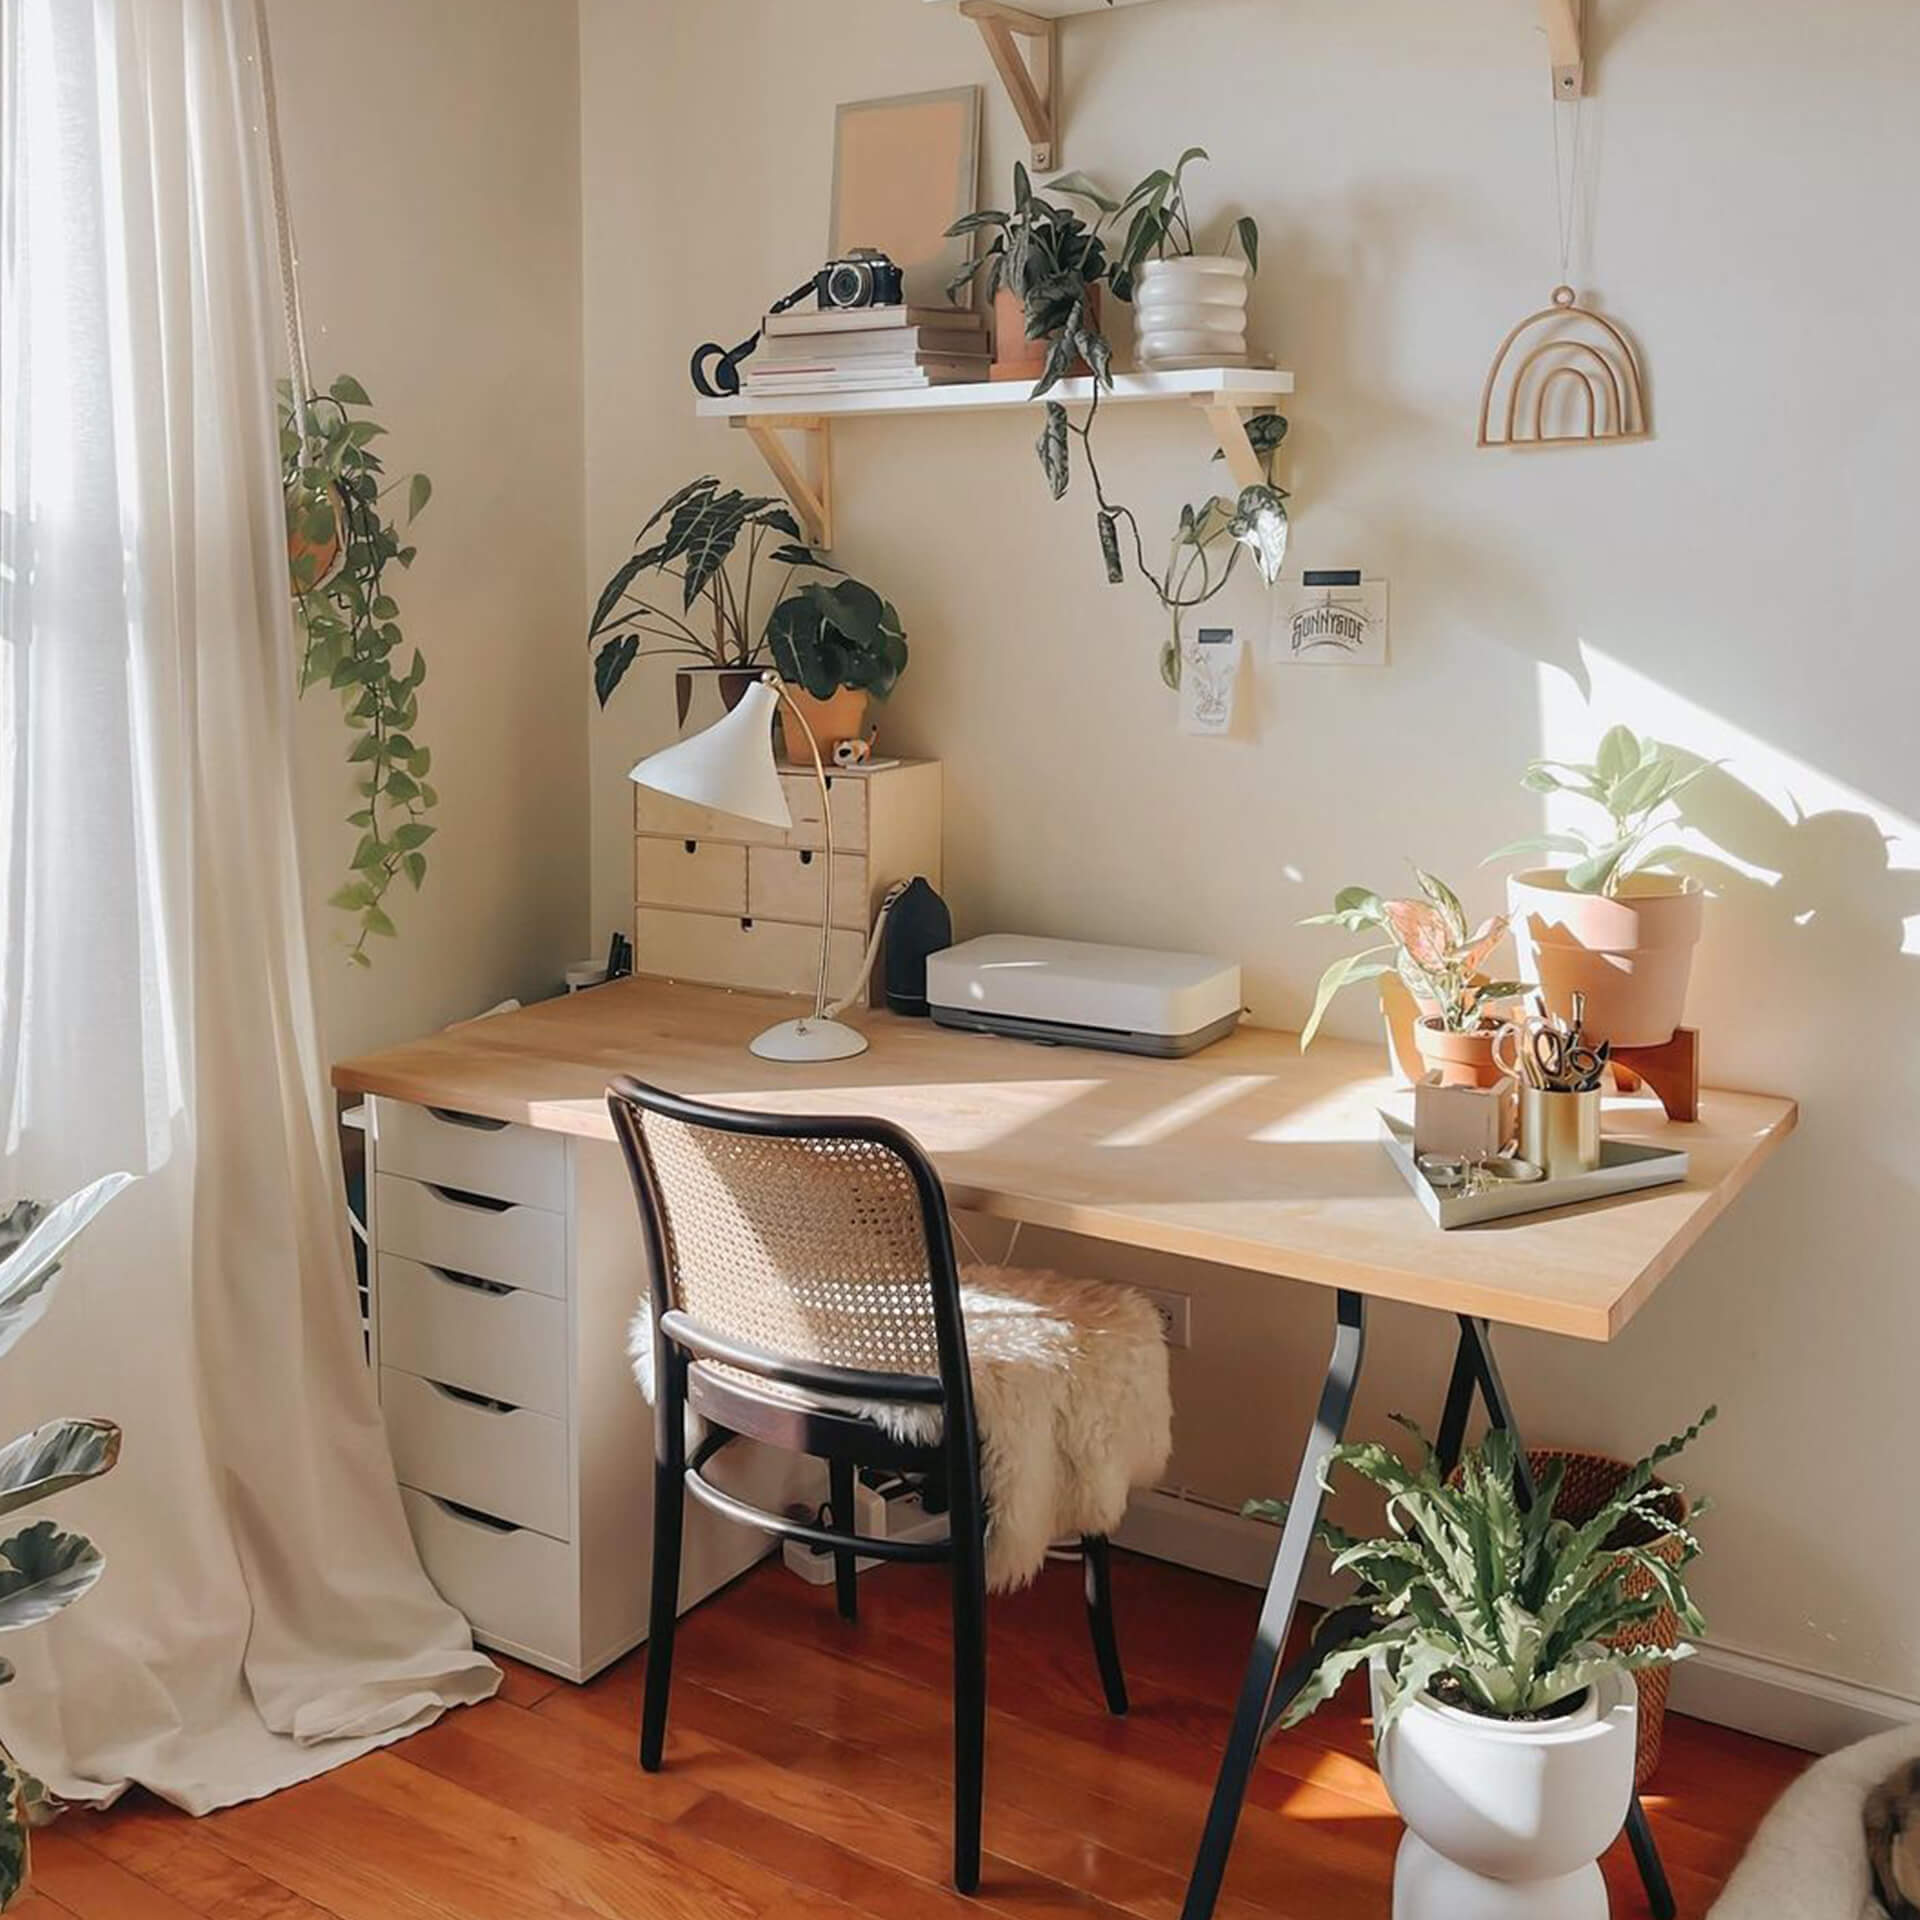 Plant Aesthetic Desk Setup